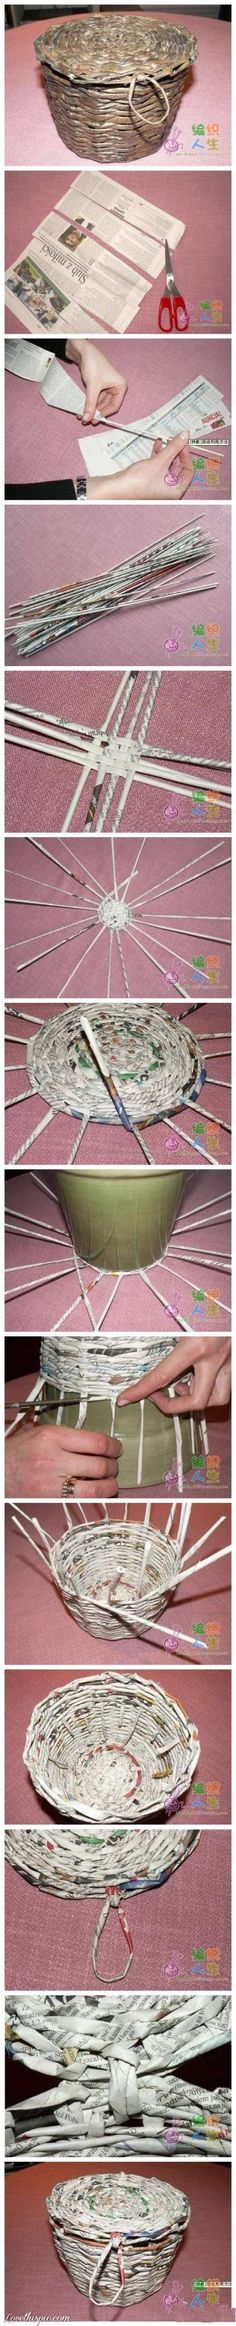 DIY Newspaper Basket Pictures, Photos, and Images for Facebook, Tumblr, Pinterest, and Twitter